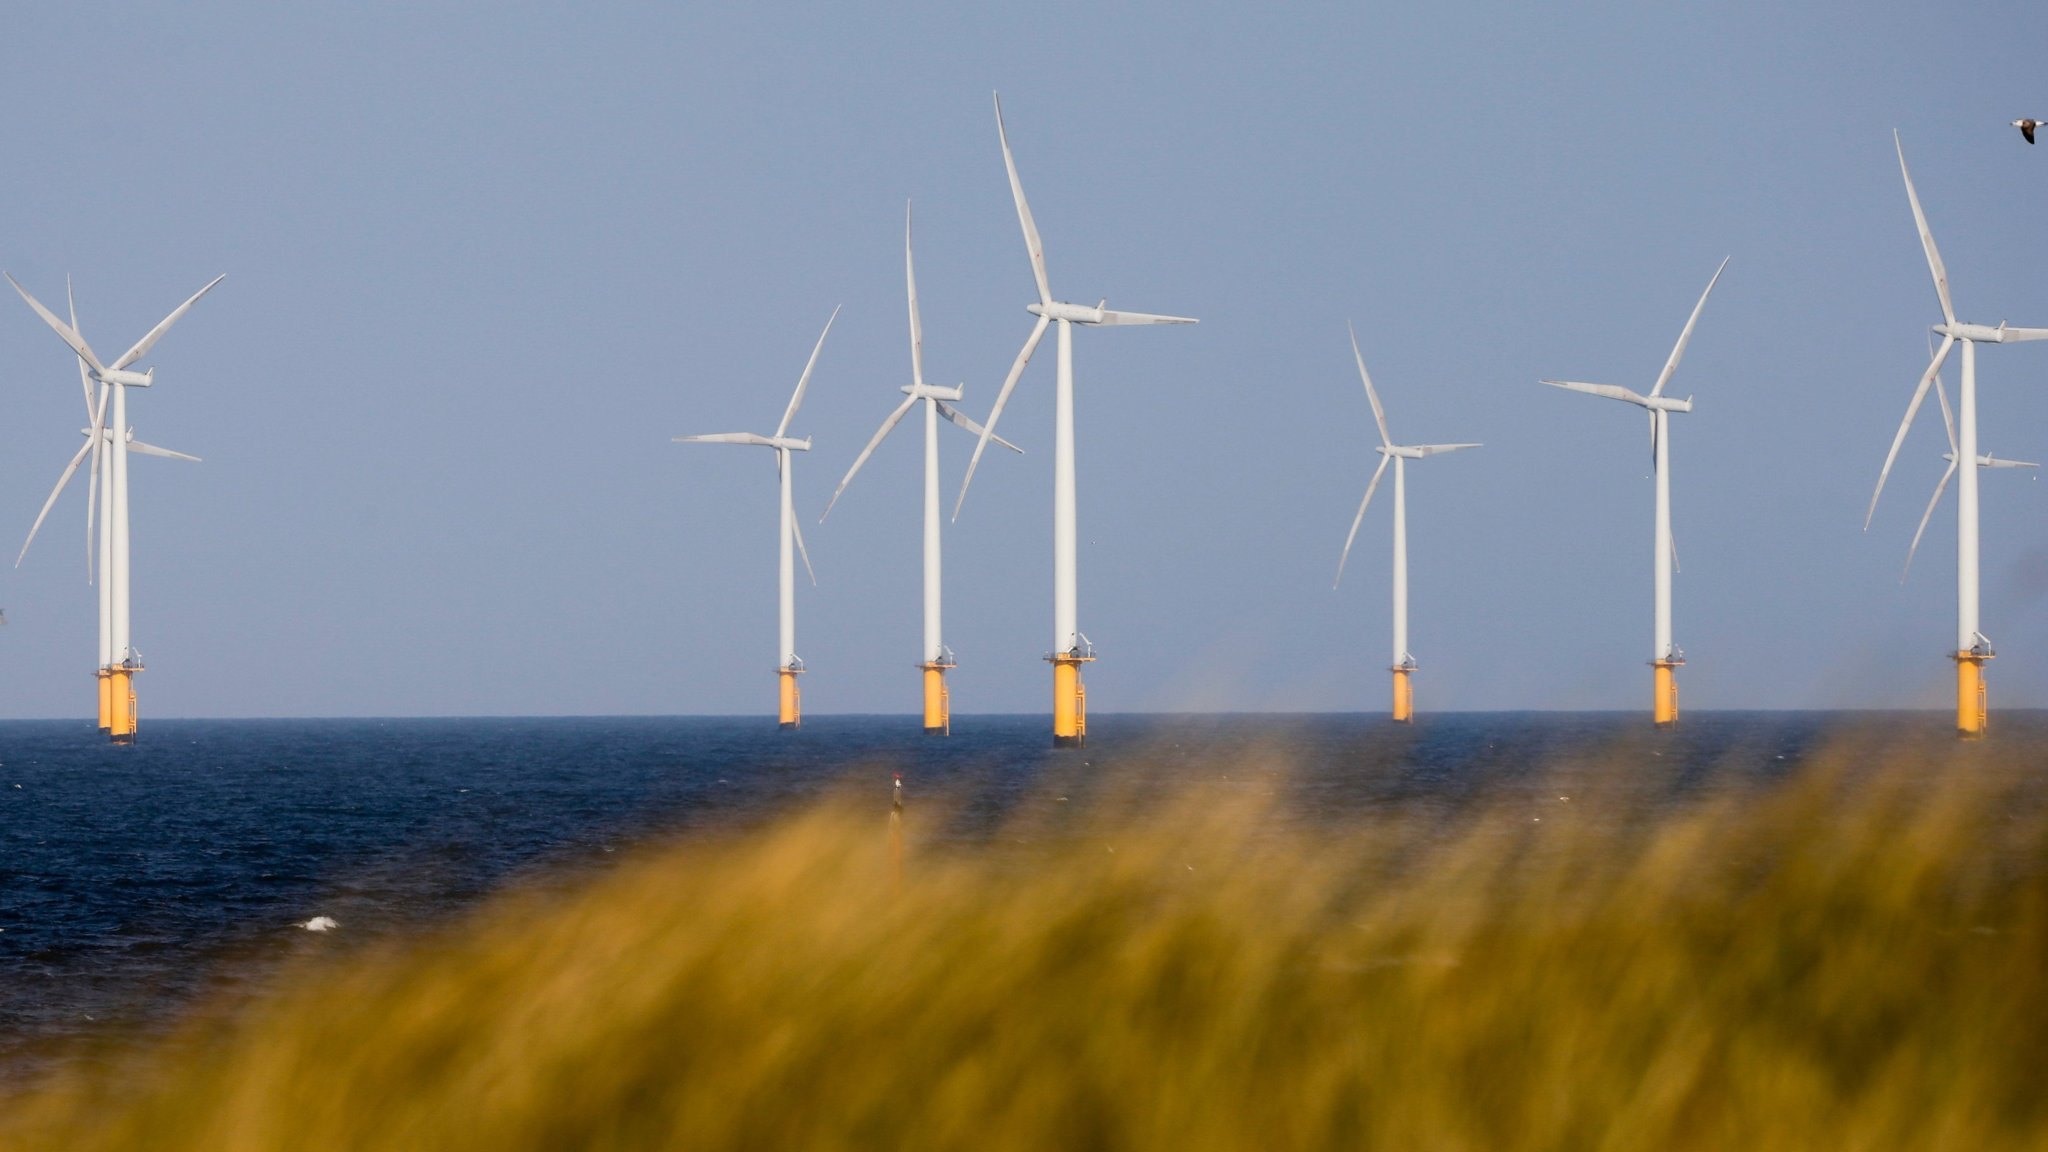 Ministers warned on subsidy risk to offshore wind power projects